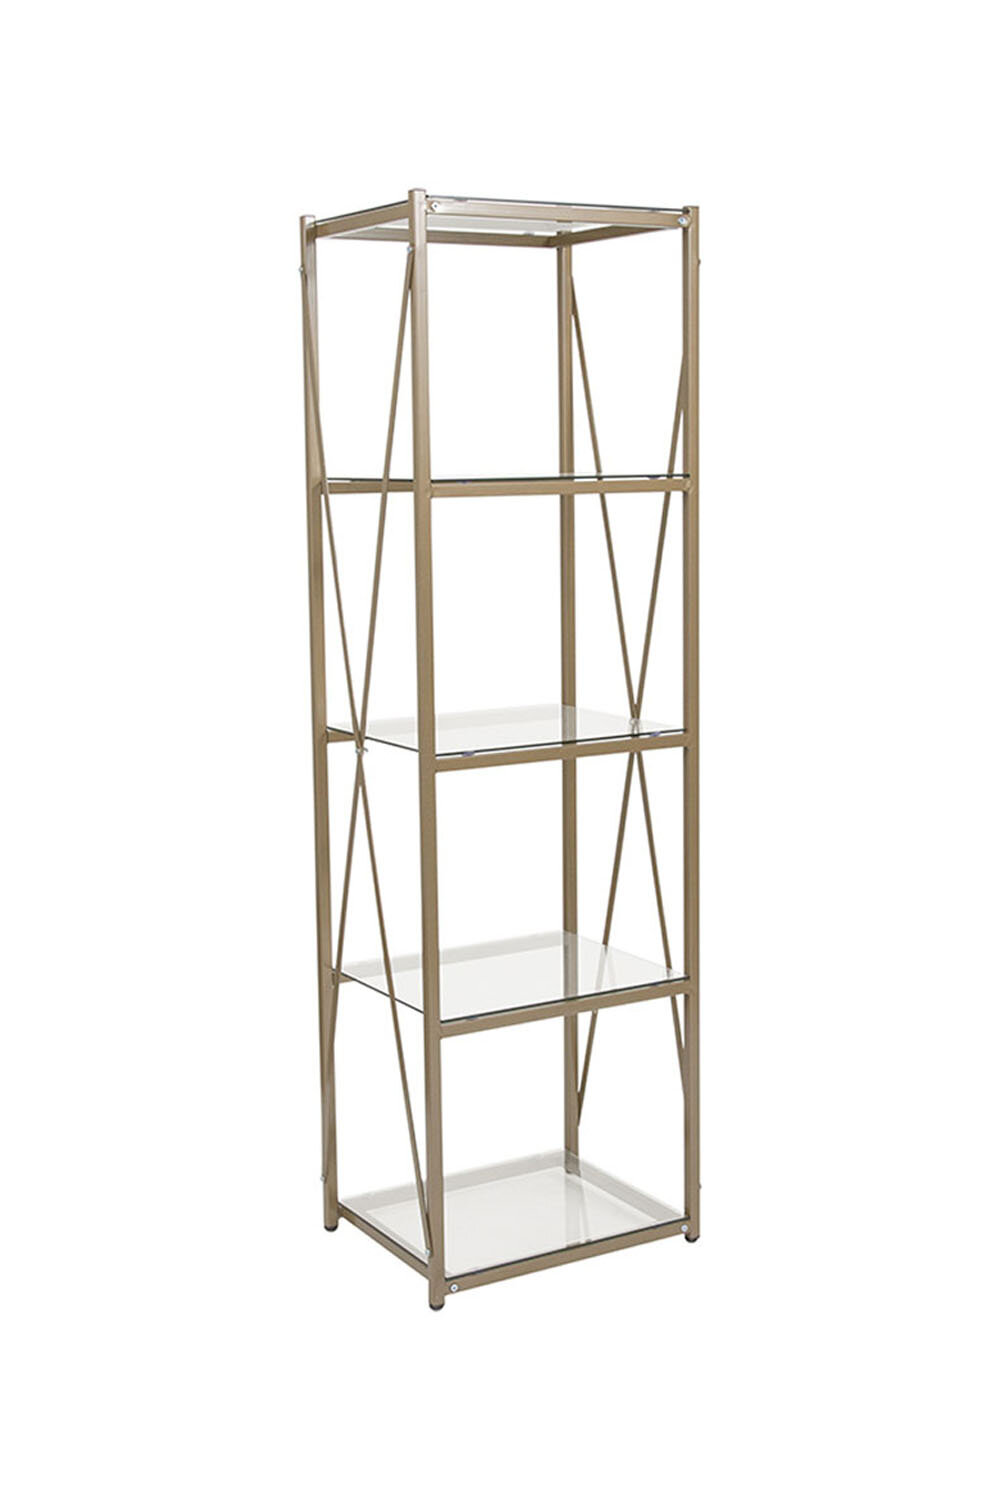 Everly Quinn Harmoni Etagere Bookcase Wayfair